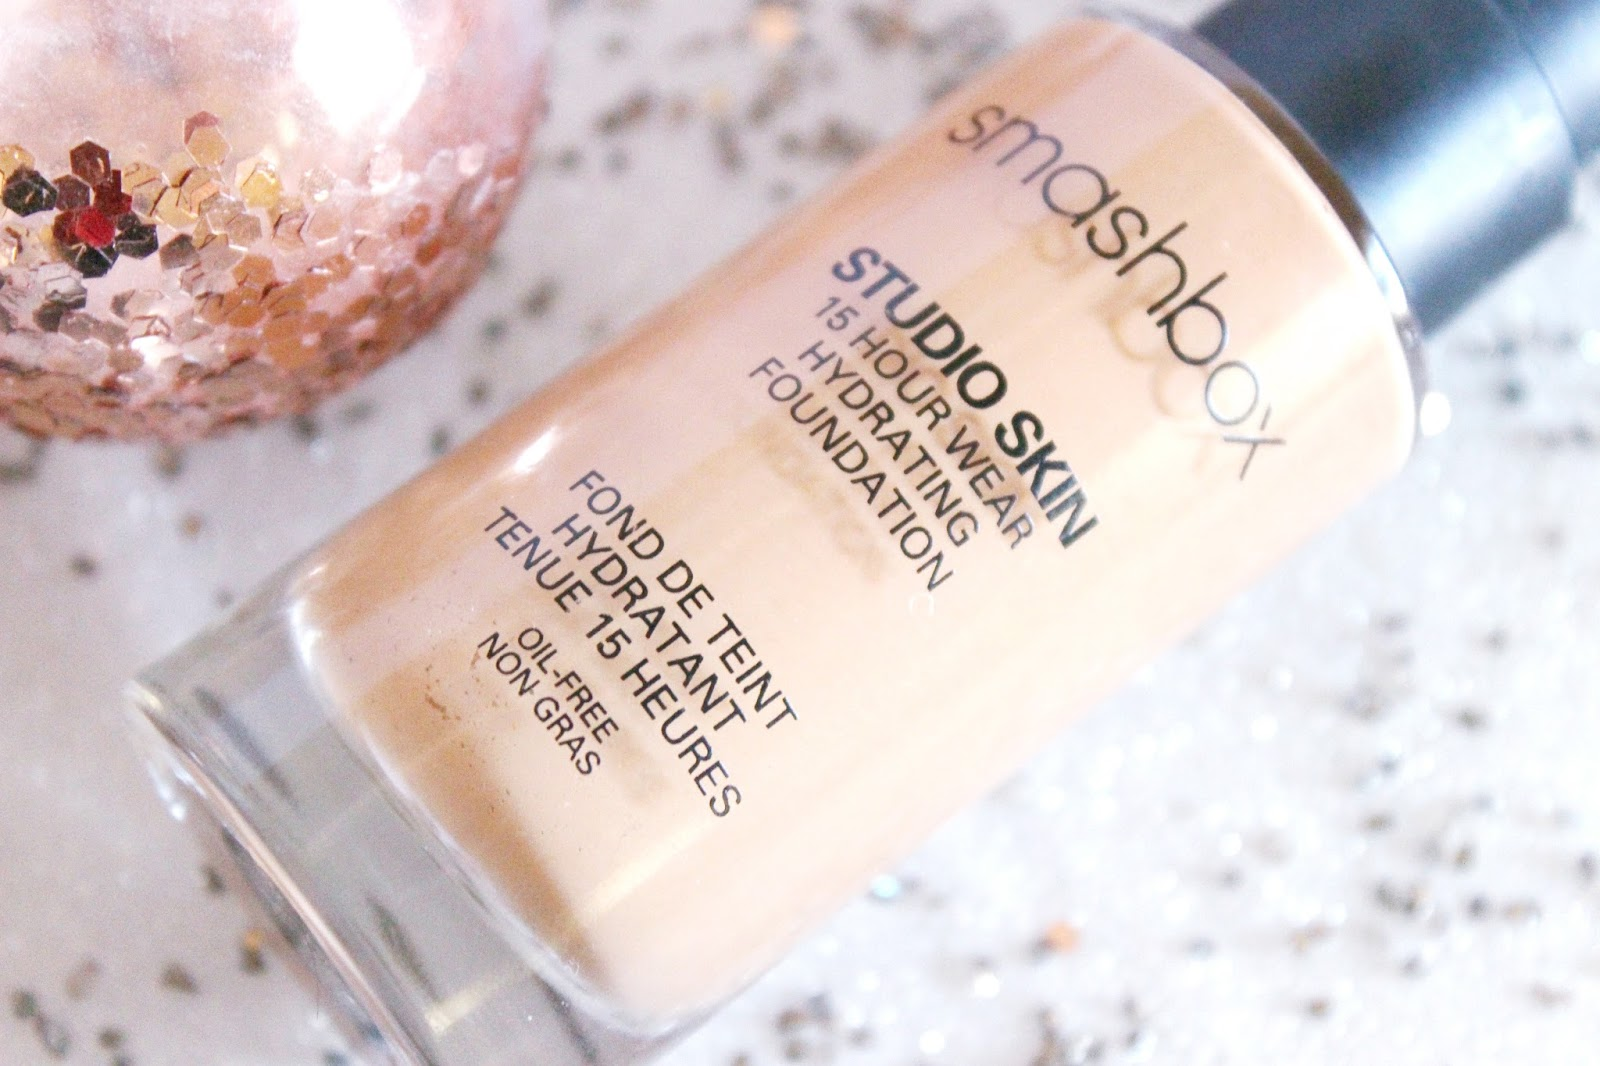 Studio Skin Smashbox